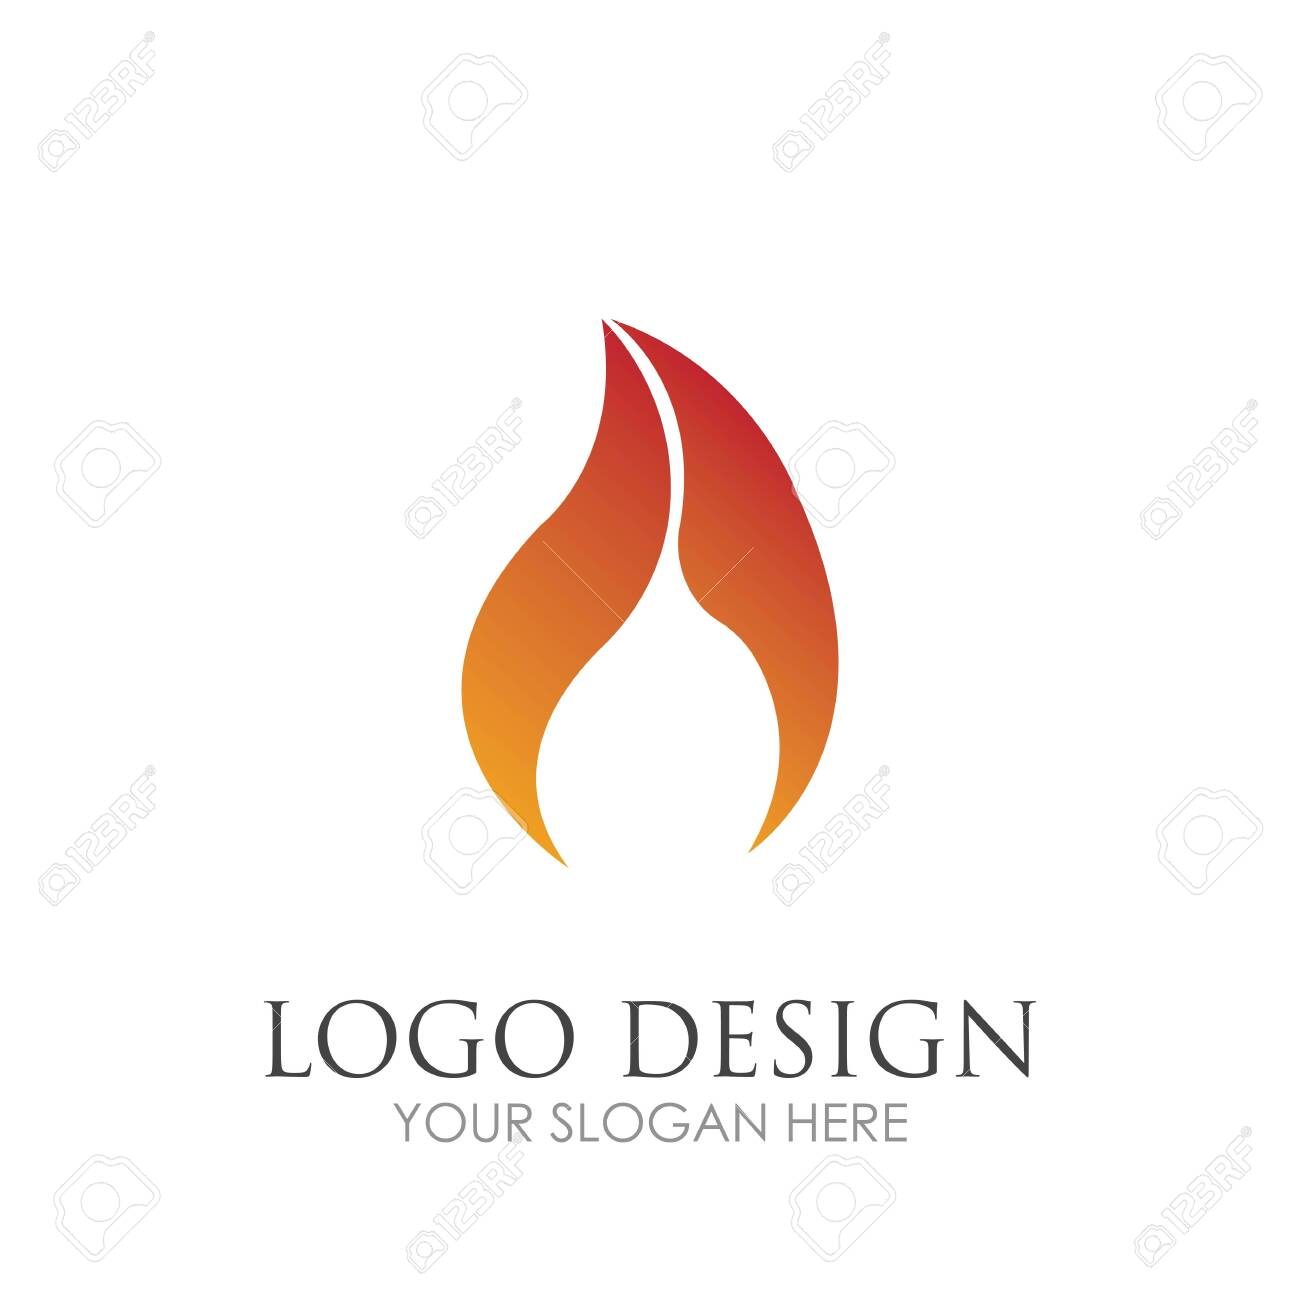 Fire with flame and feuer mit flamme Logo - Vector - 145117959